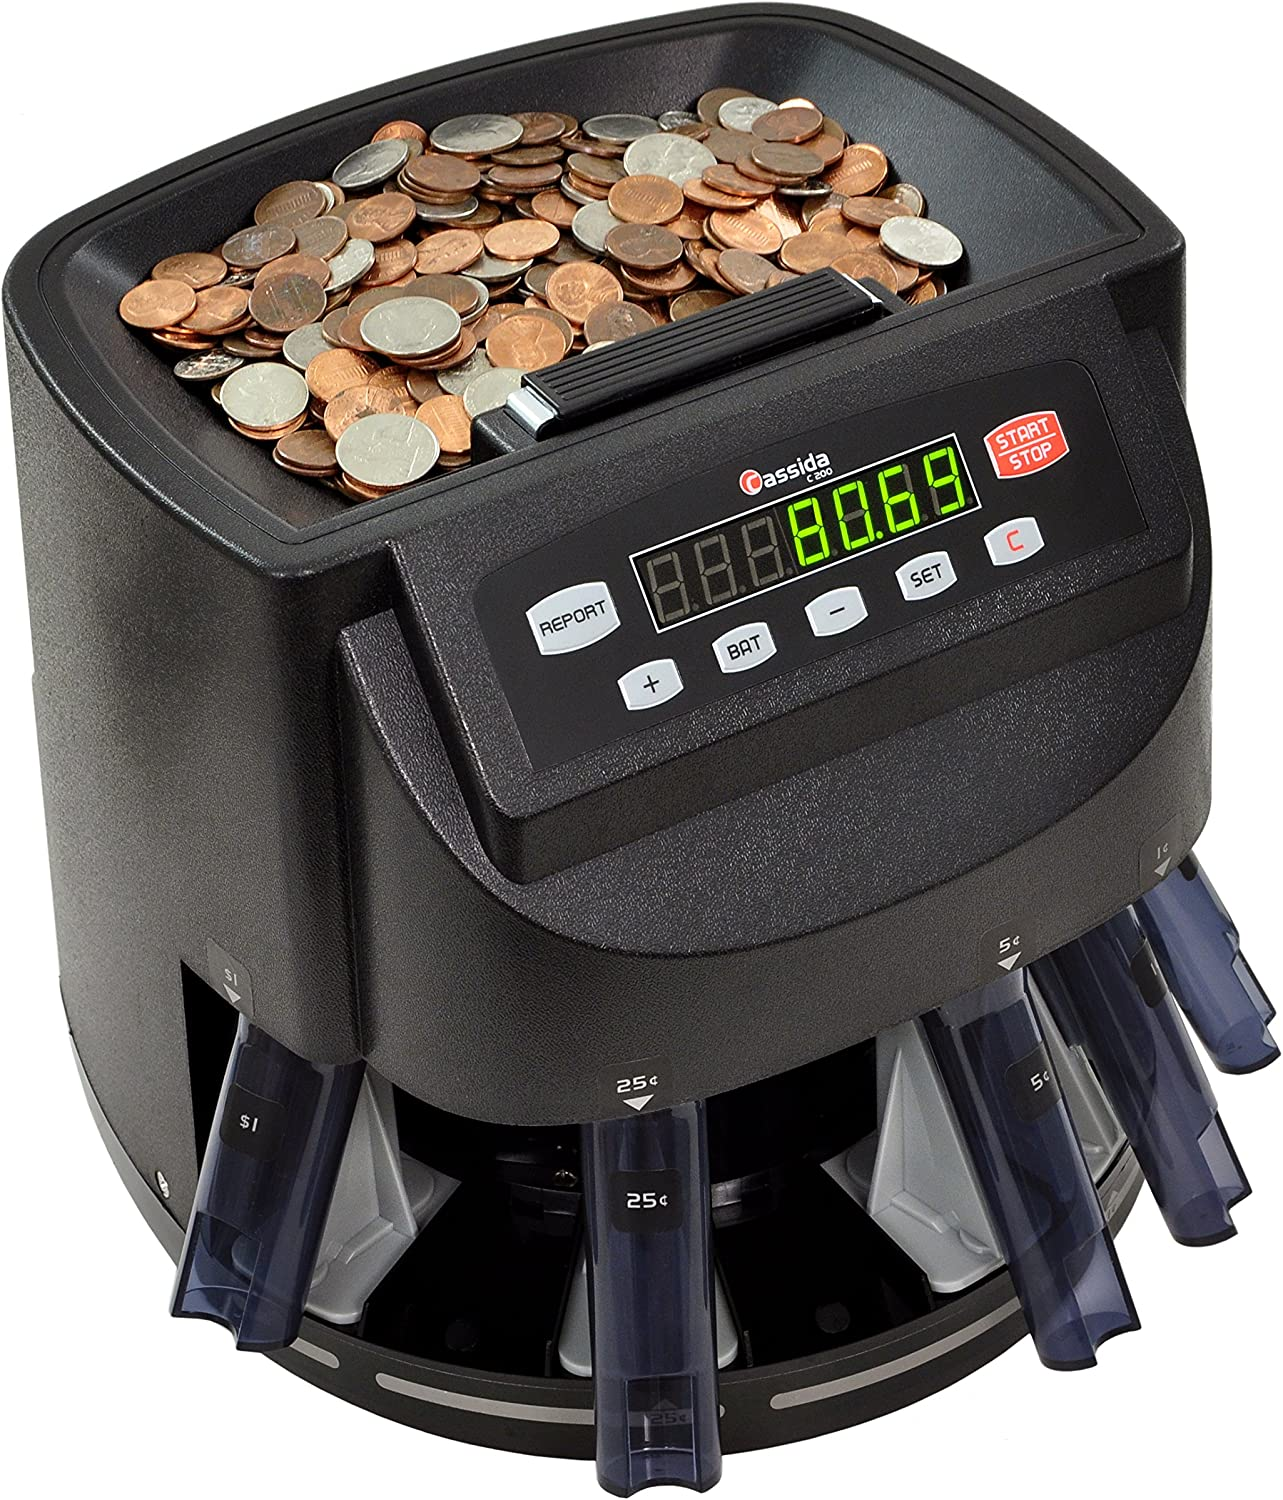 Cassida C200 Coin Sorter, Counter and Roller,Black